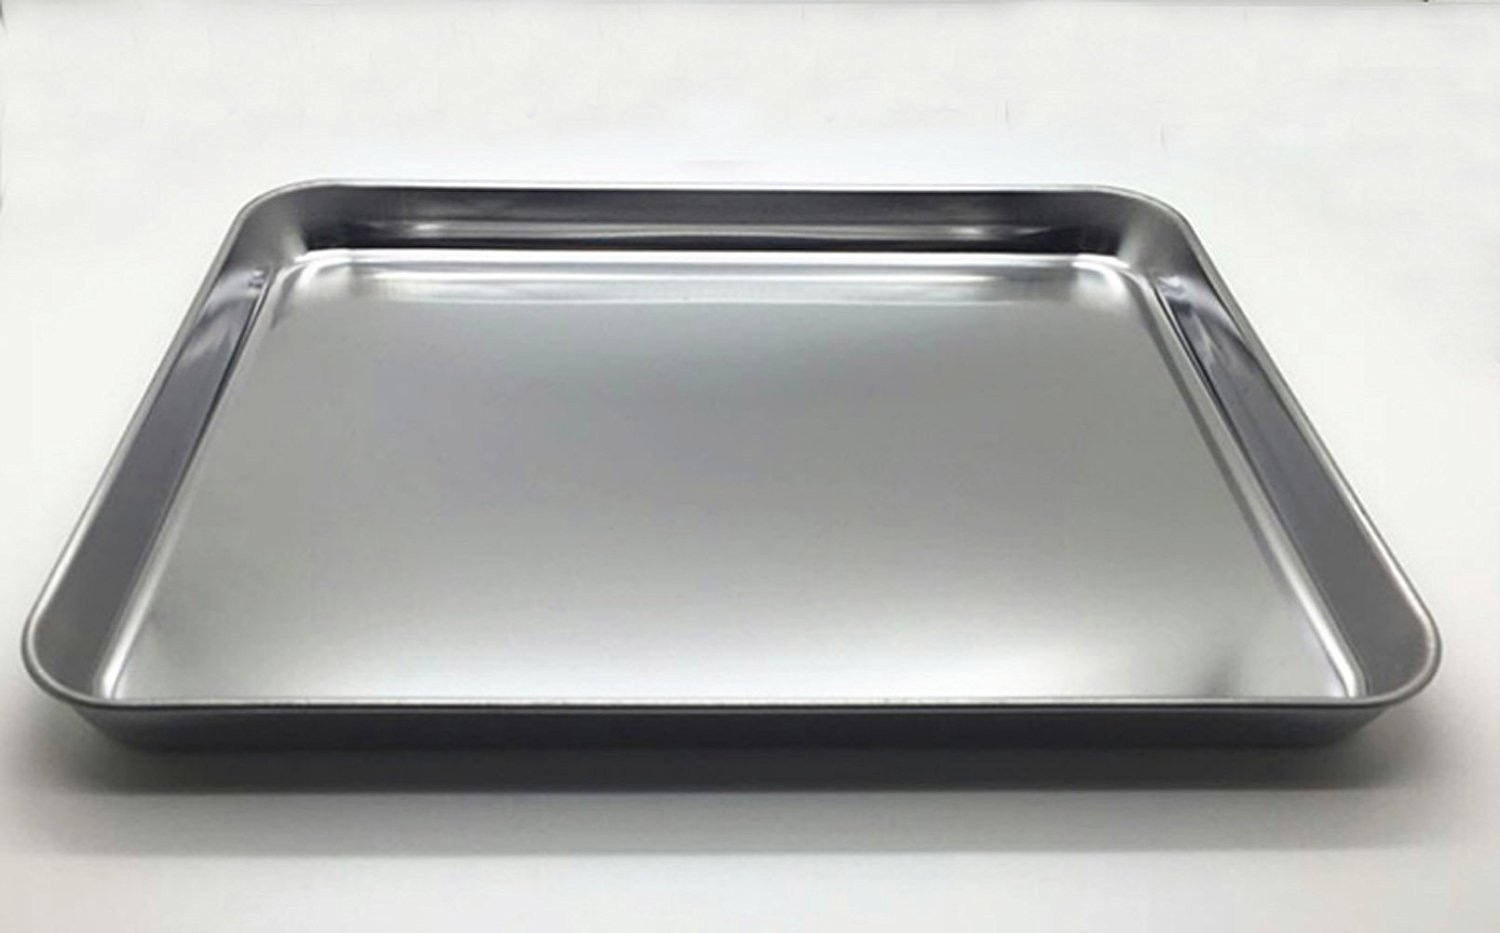 Aeehfeng Stainless Steel Toaster Oven Pan Tray Ovenware, Big Size 12'' x 10'' x 1'', Rust Resistant & Healthy, Mirror Finish & Deep Edge, Easy Clean & Dishwasher Safe by aeehfeng (Image #3)